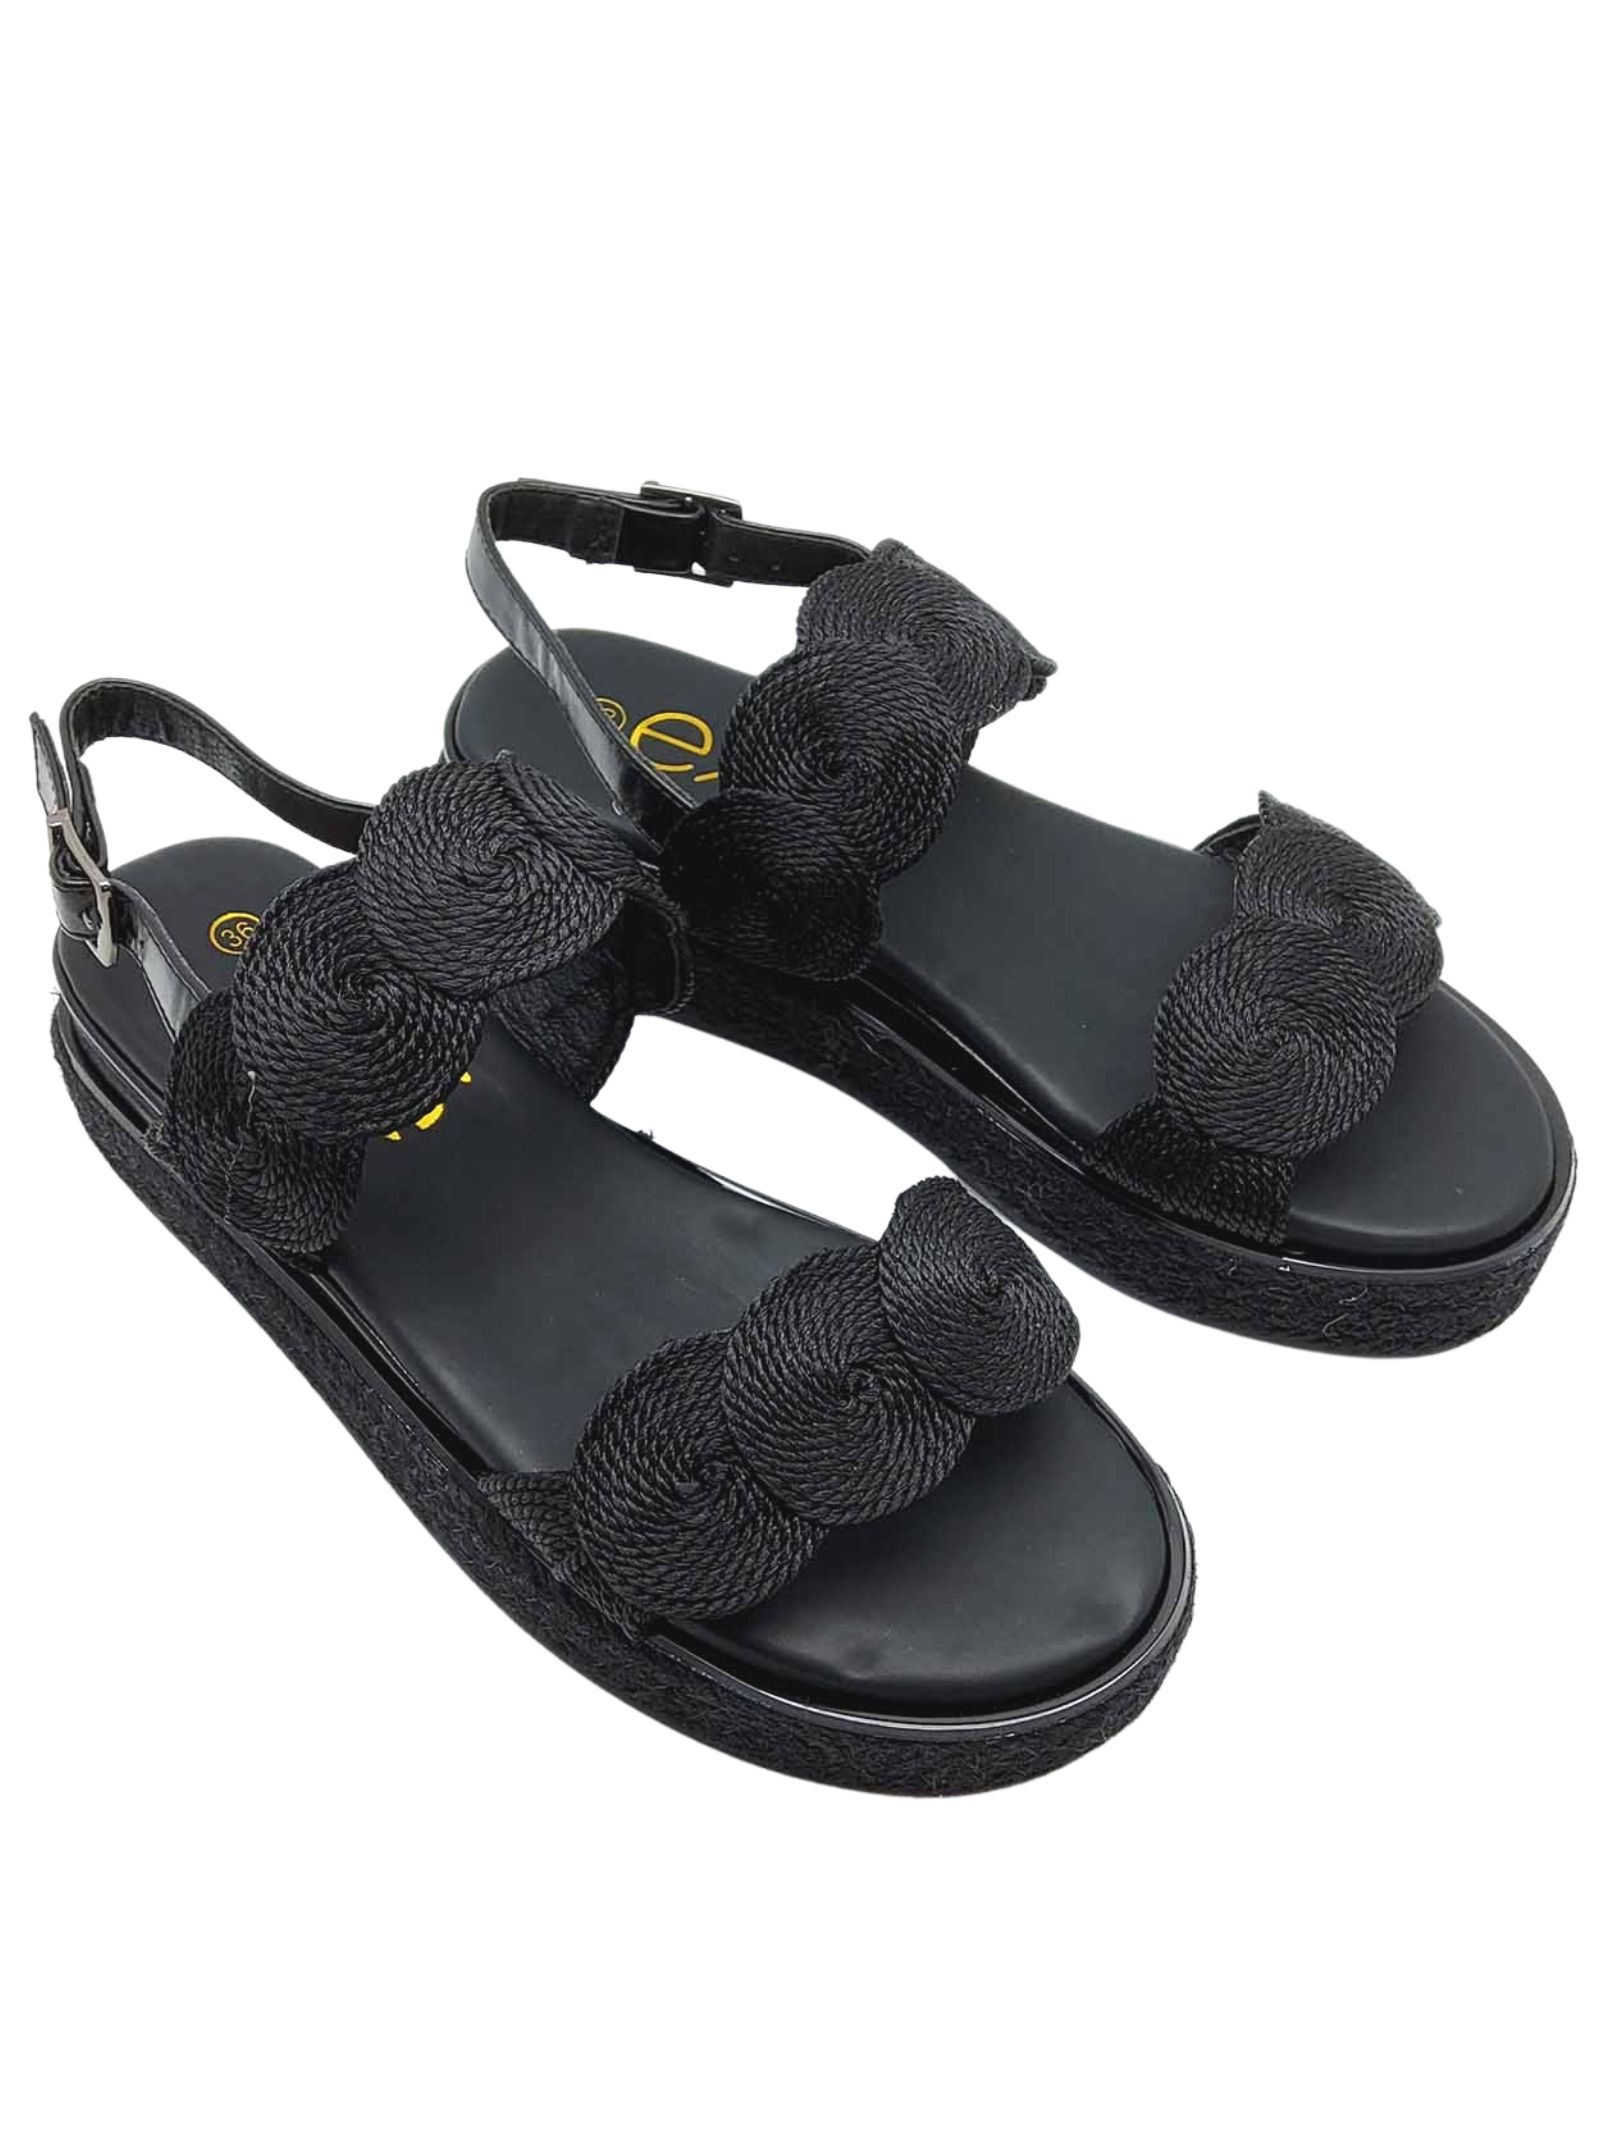 Women's Shoes Black Fabric Sandals with Back Strap and Rope Wedge Exe | Wedge Sandals | 2057001